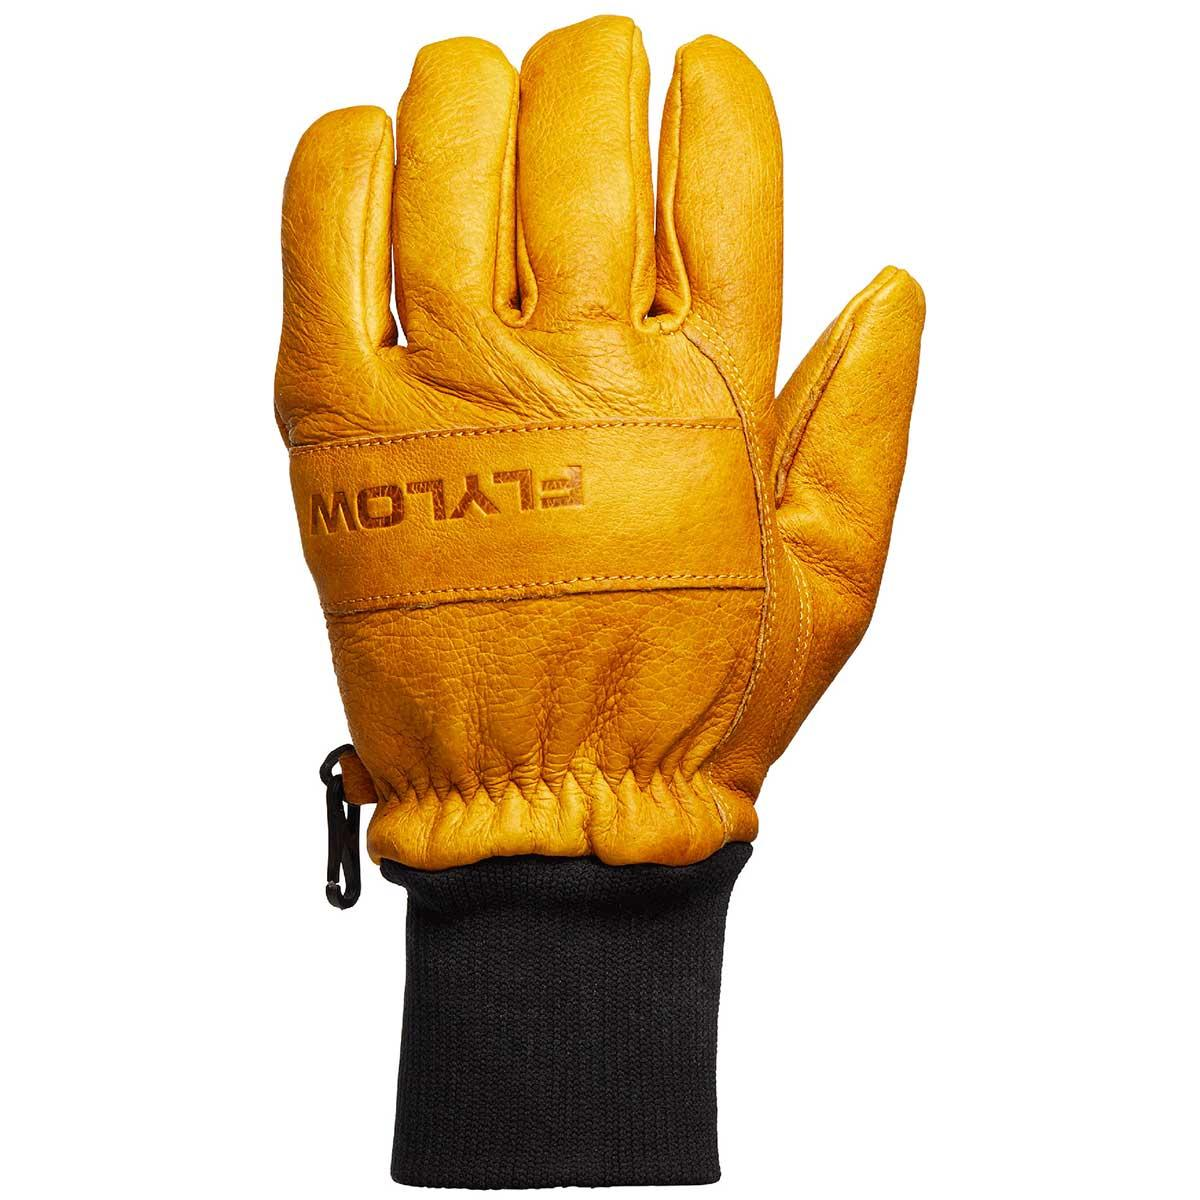 Flylow Ridge Glove in Natural back of hand view